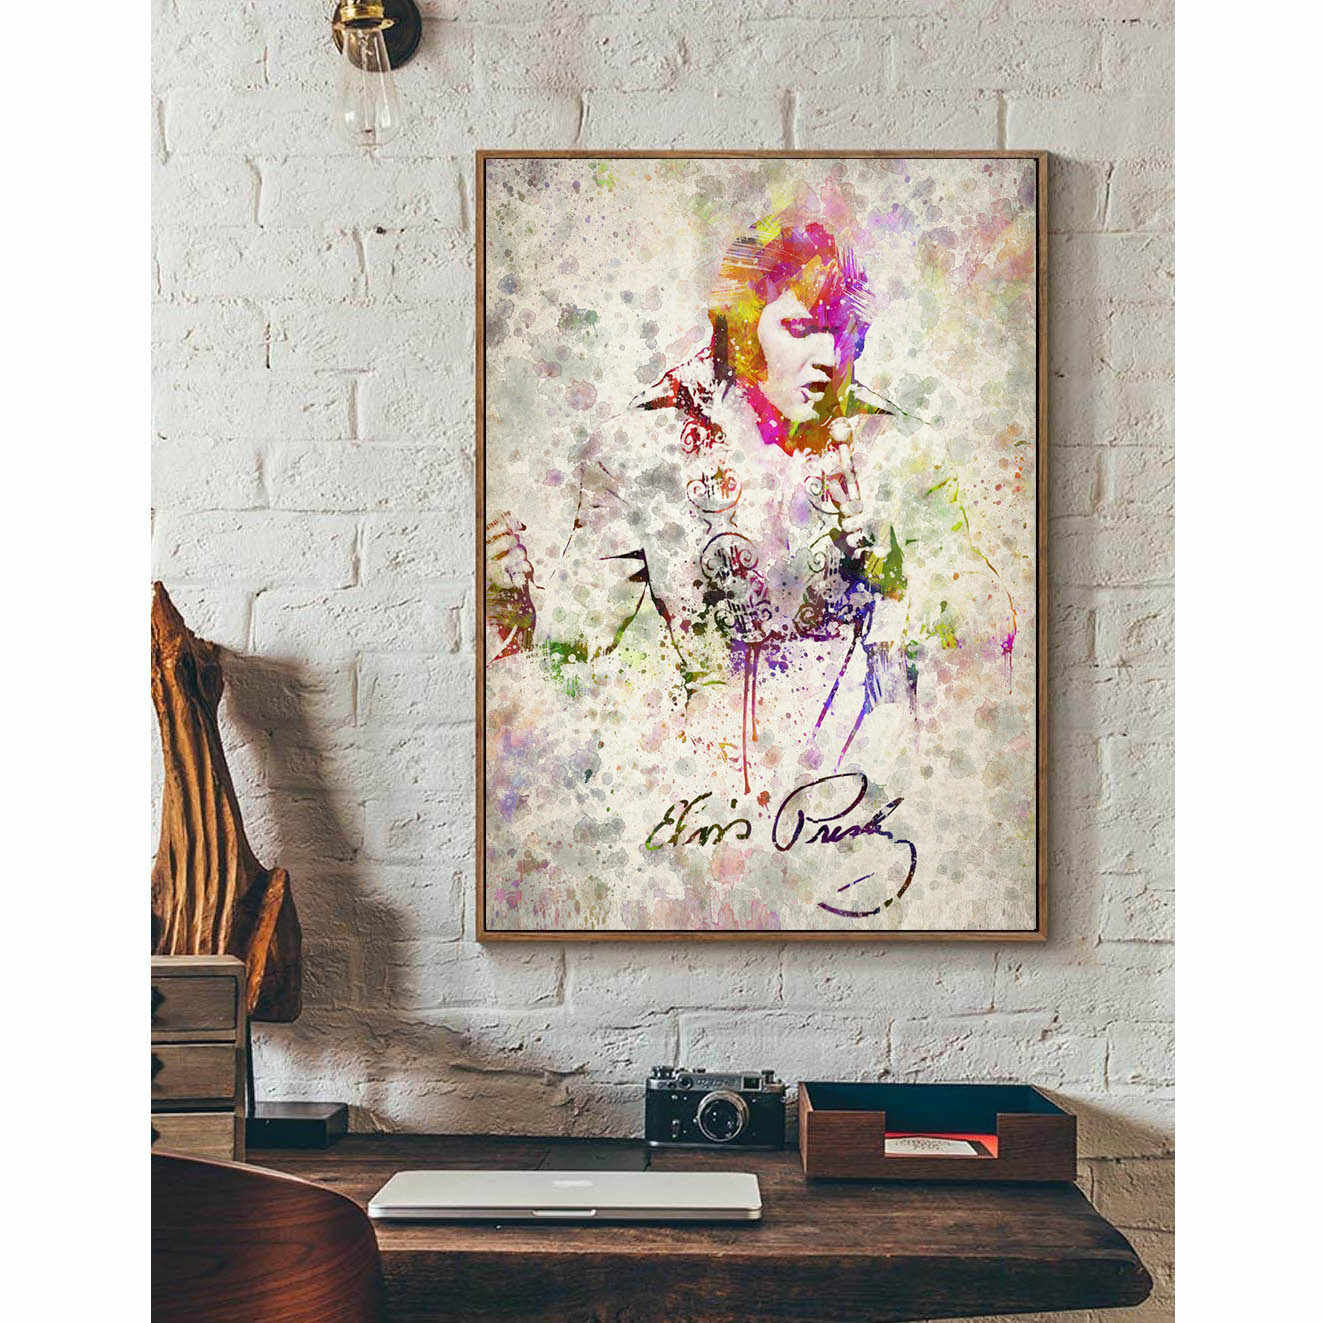 Elvis Presley Minimalism Art Canvas Poster Print Music Rapper Star Watercolor Style Picture for Modern Home Decor Gift FA104